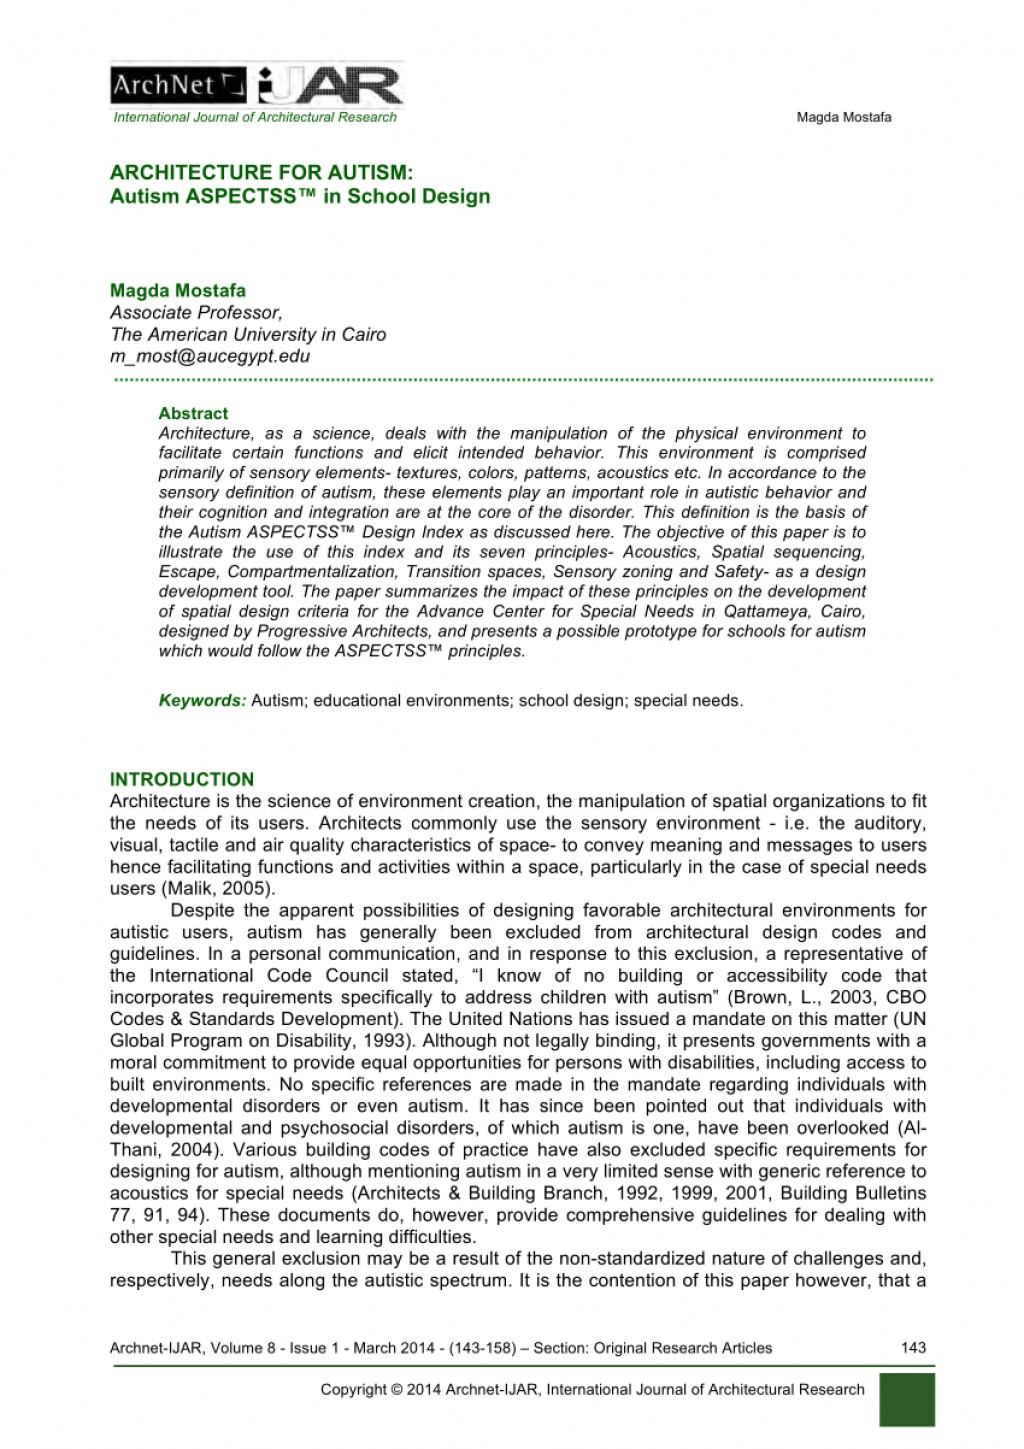 009 Autism Research Paper Thesis Fascinating Large